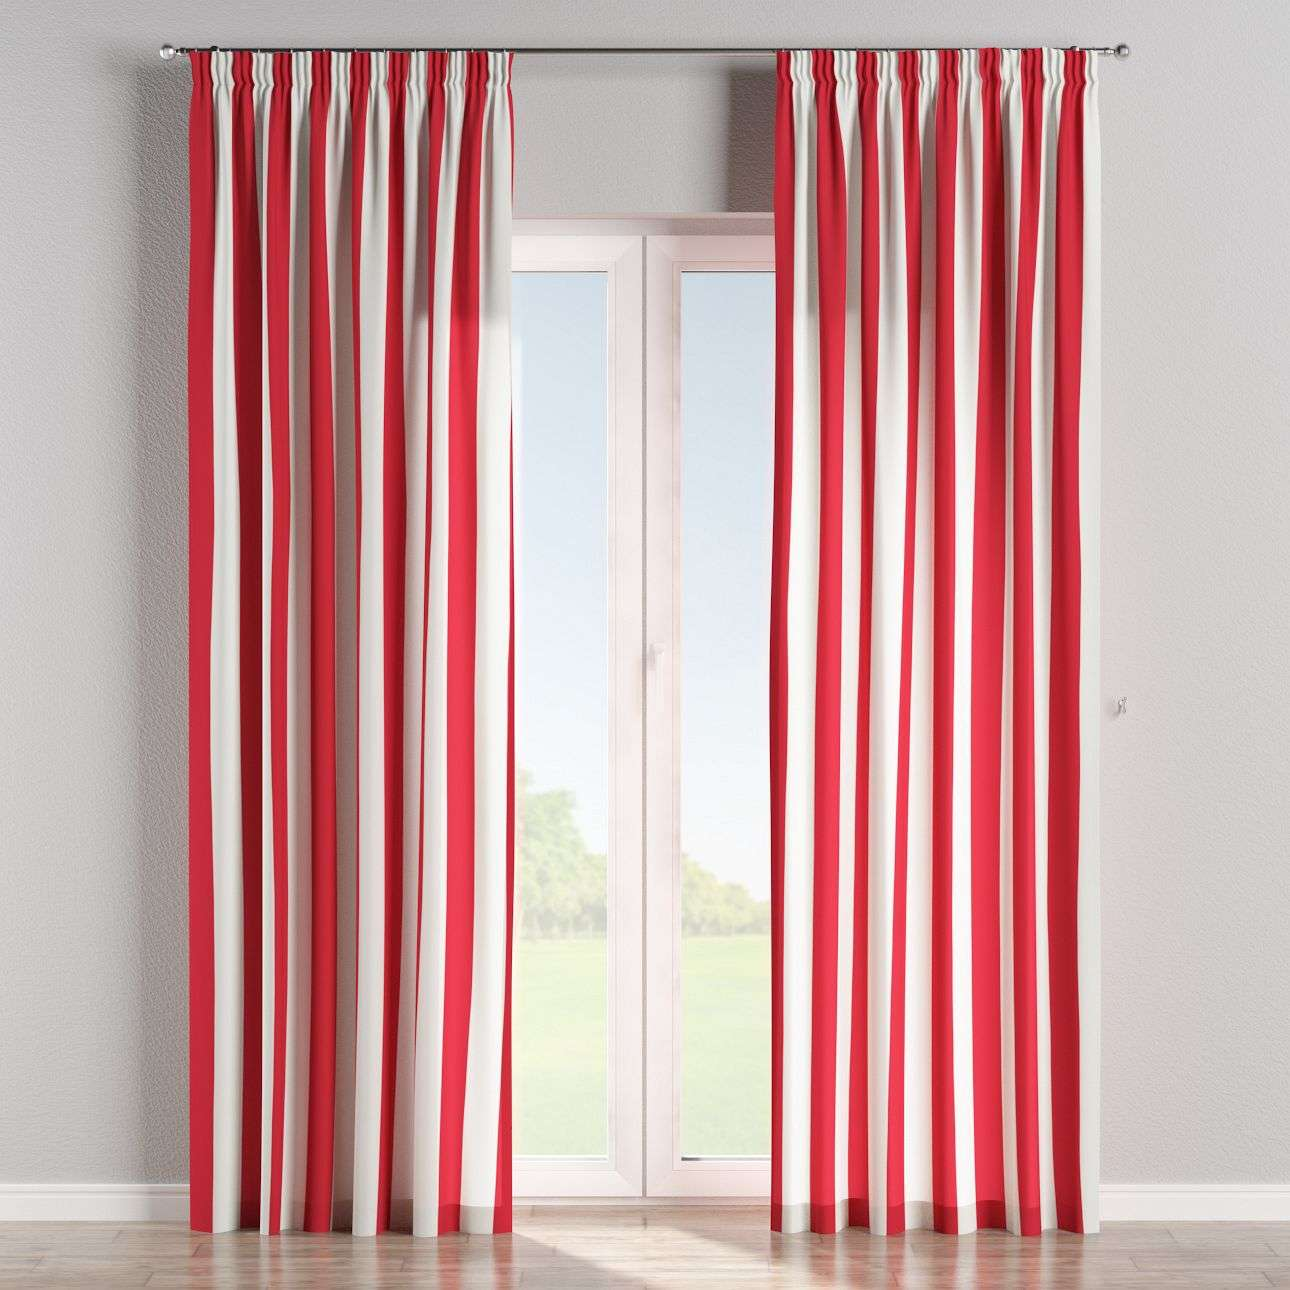 Pencil pleat curtains 130 x 260 cm (51 x 102 inch) in collection Comic Book & Geo Prints, fabric: 137-54